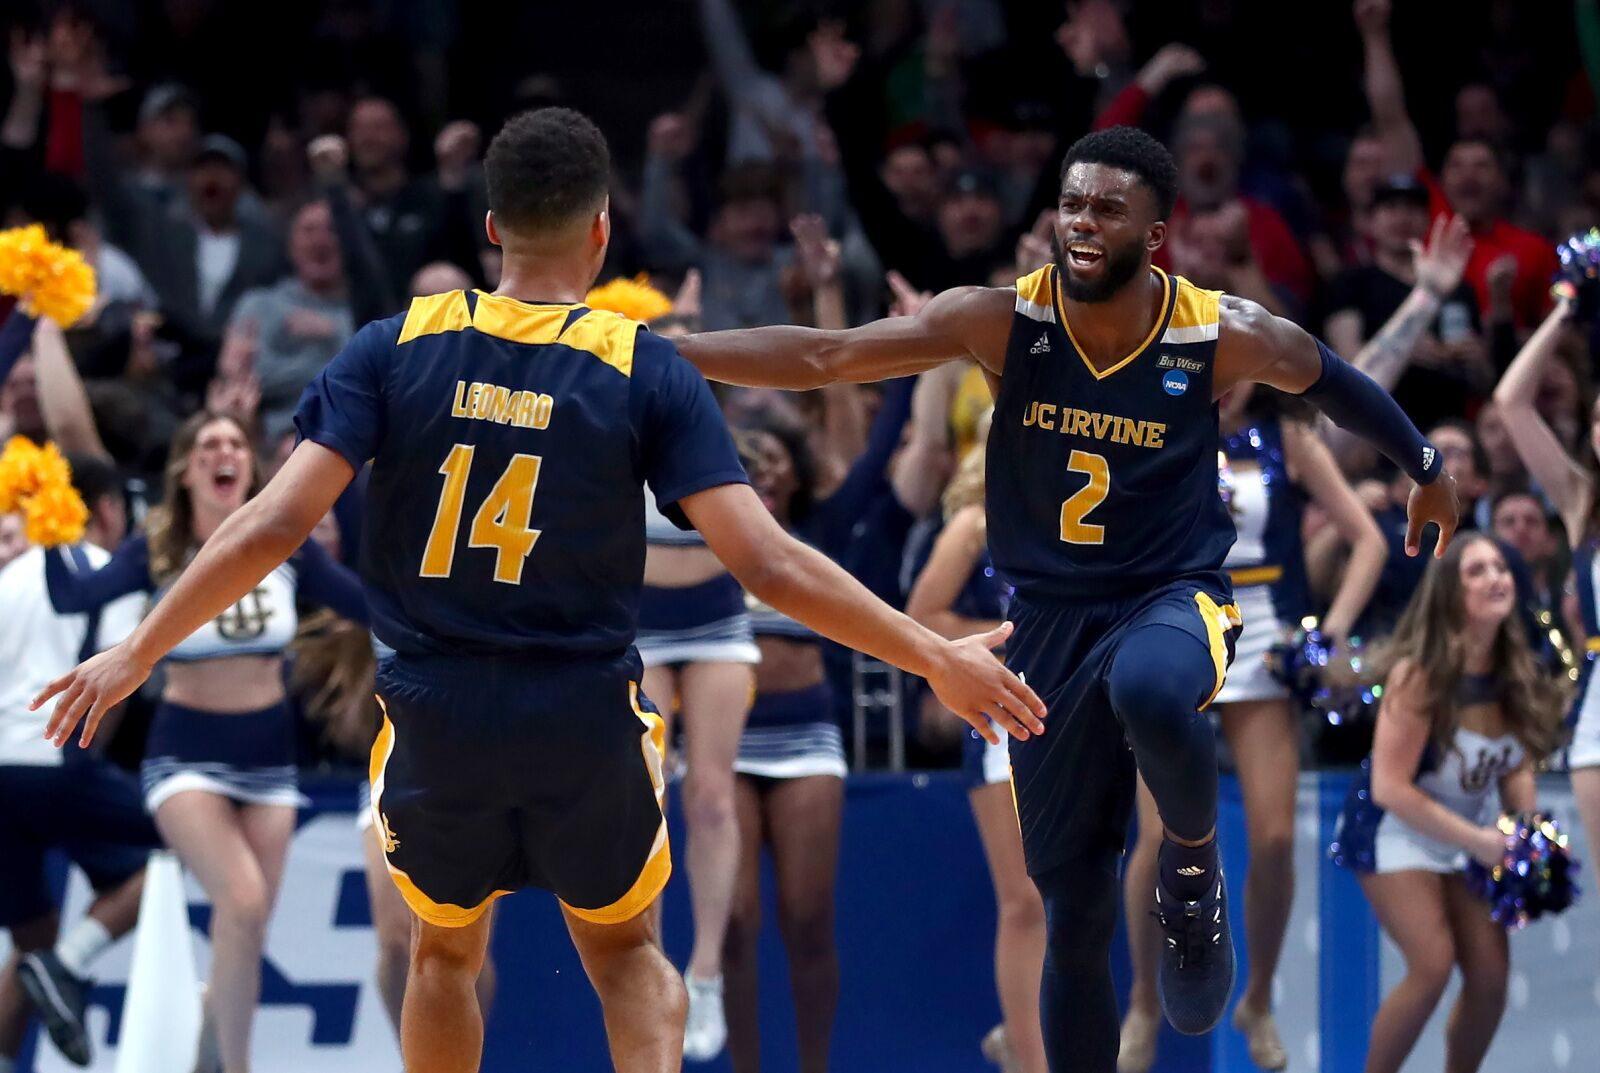 SAN JOSE, CALIFORNIA - MARCH 22: Evan Leonard #14 of the UC Irvine Anteaters celebrates a three-point shot with Max Hazzard #2 in the second half against the Kansas State Wildcats during the first round of the 2019 NCAA Men's Basketball Tournament at SAP Center on March 22, 2019 in San Jose, California. (Photo by Yong Teck Lim/Getty Images)